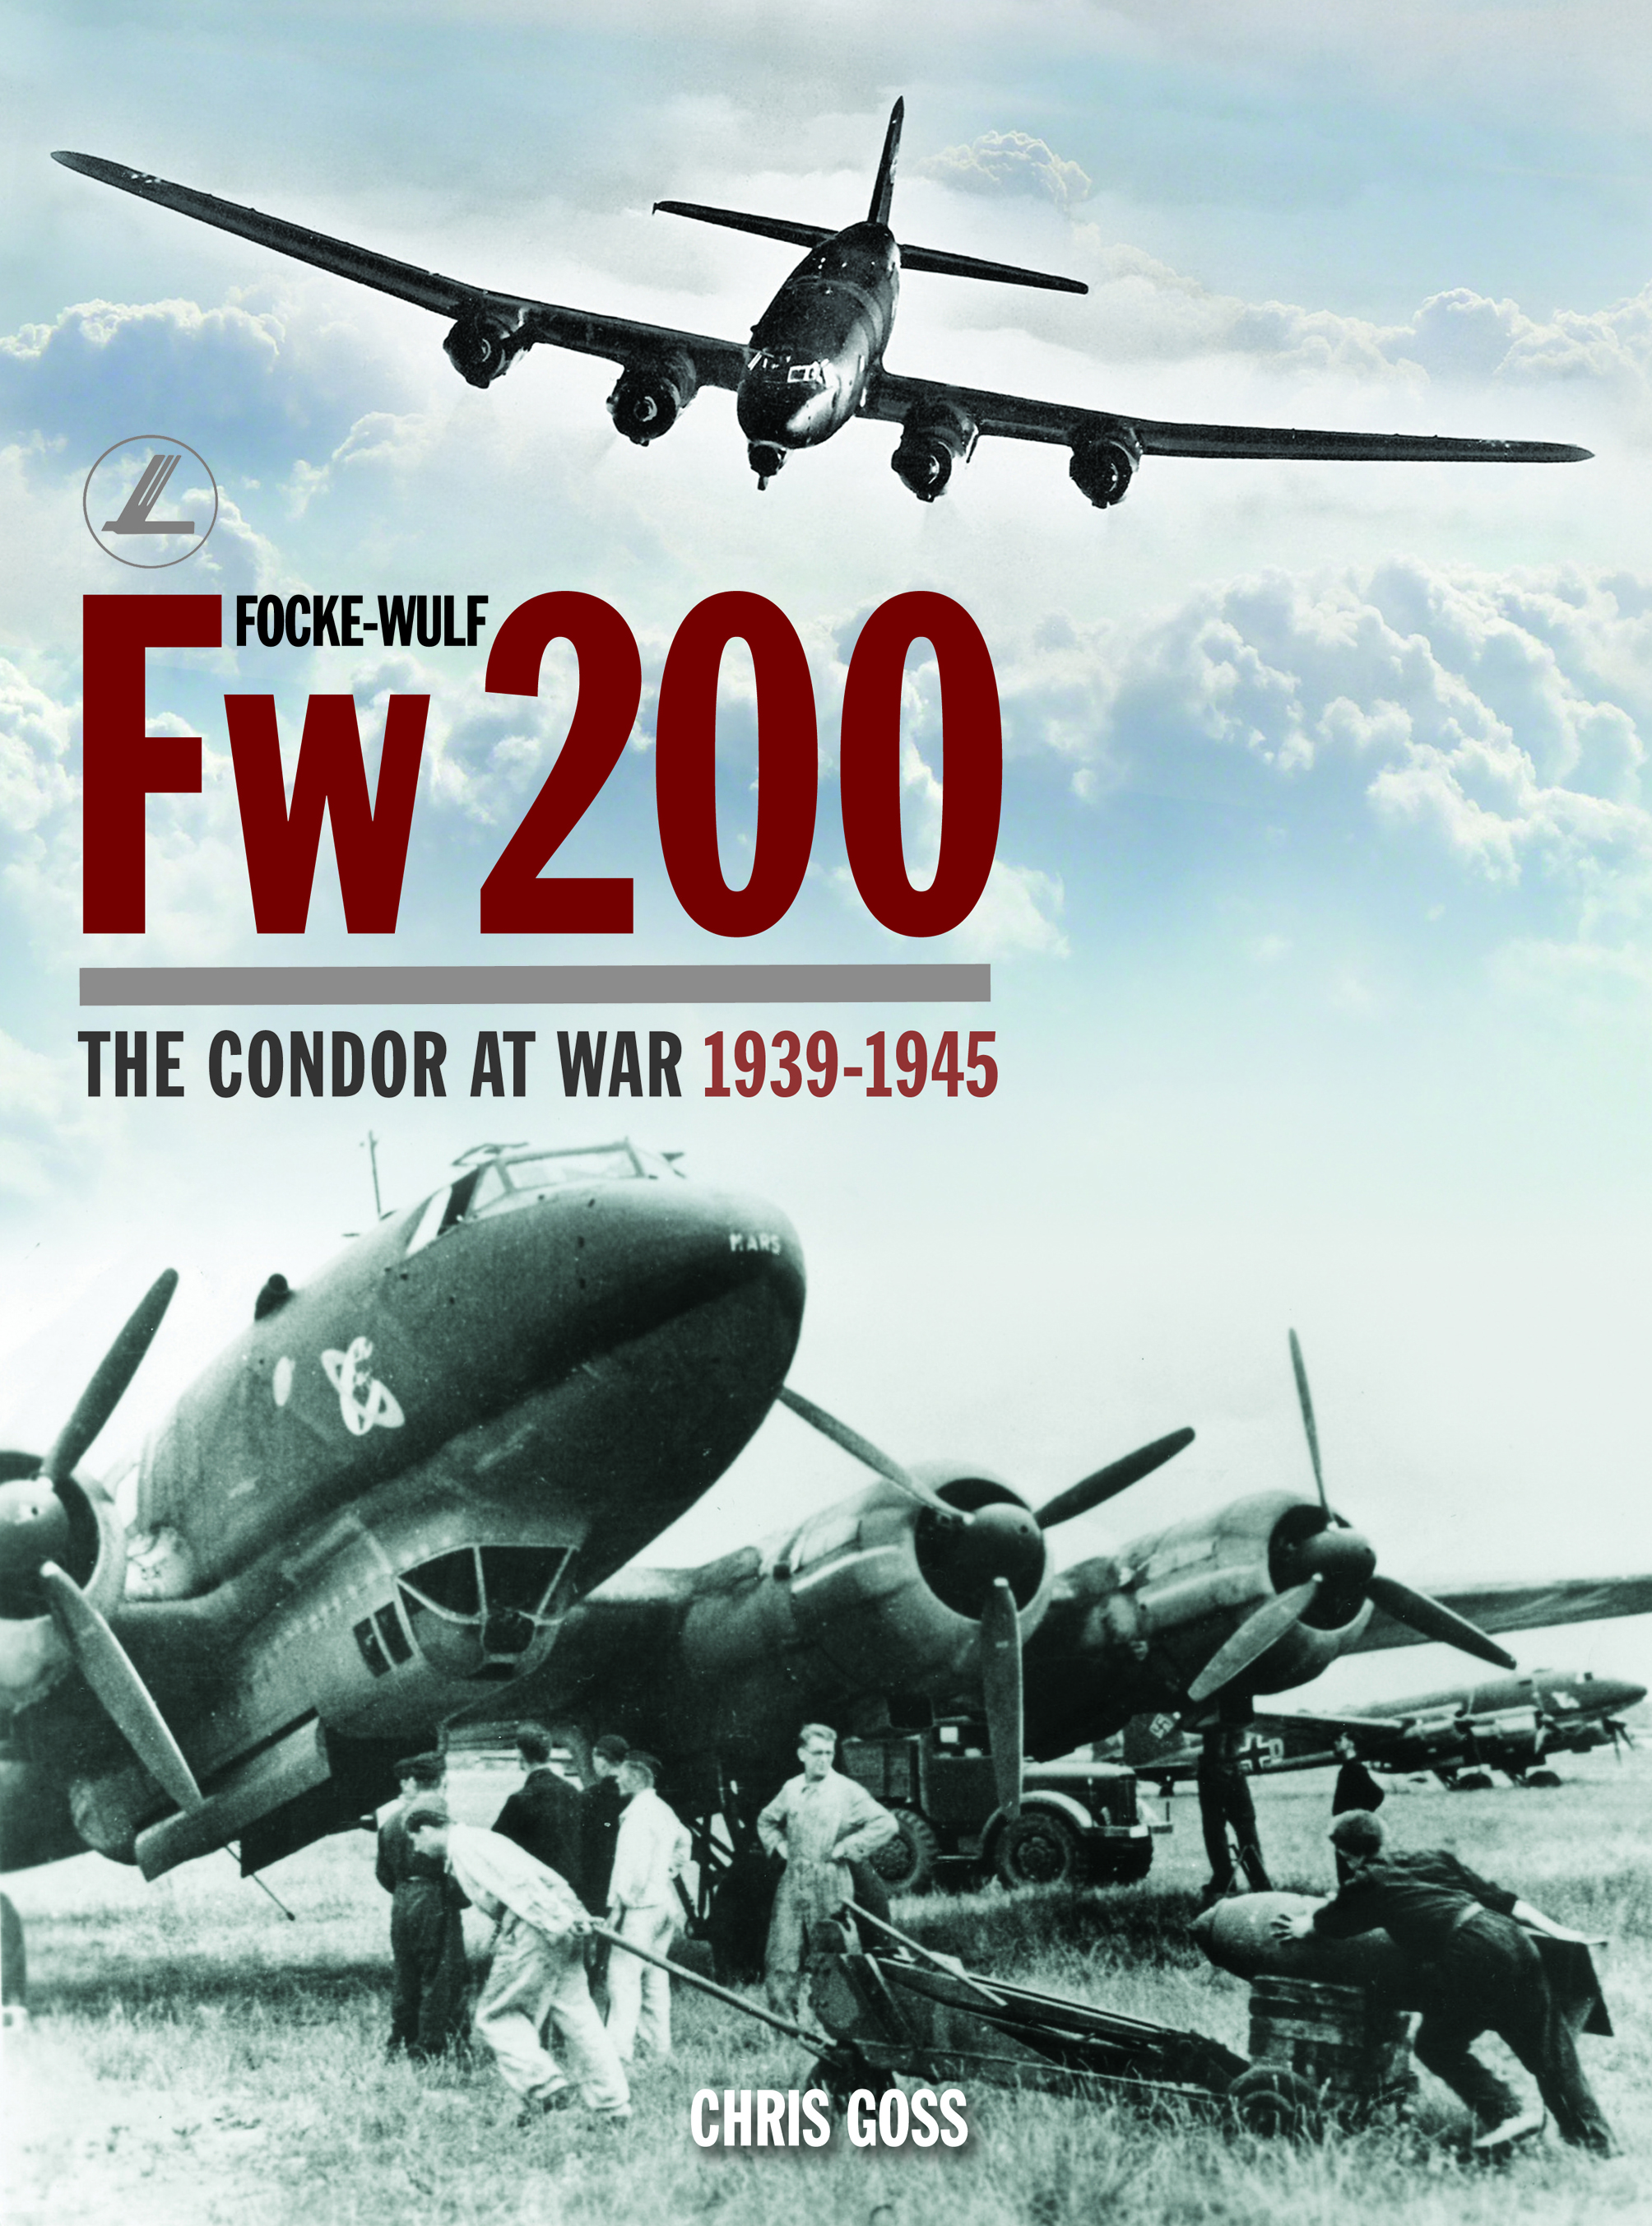 The Focke-Wulf Fw 200 The Condor at War 1939-1945